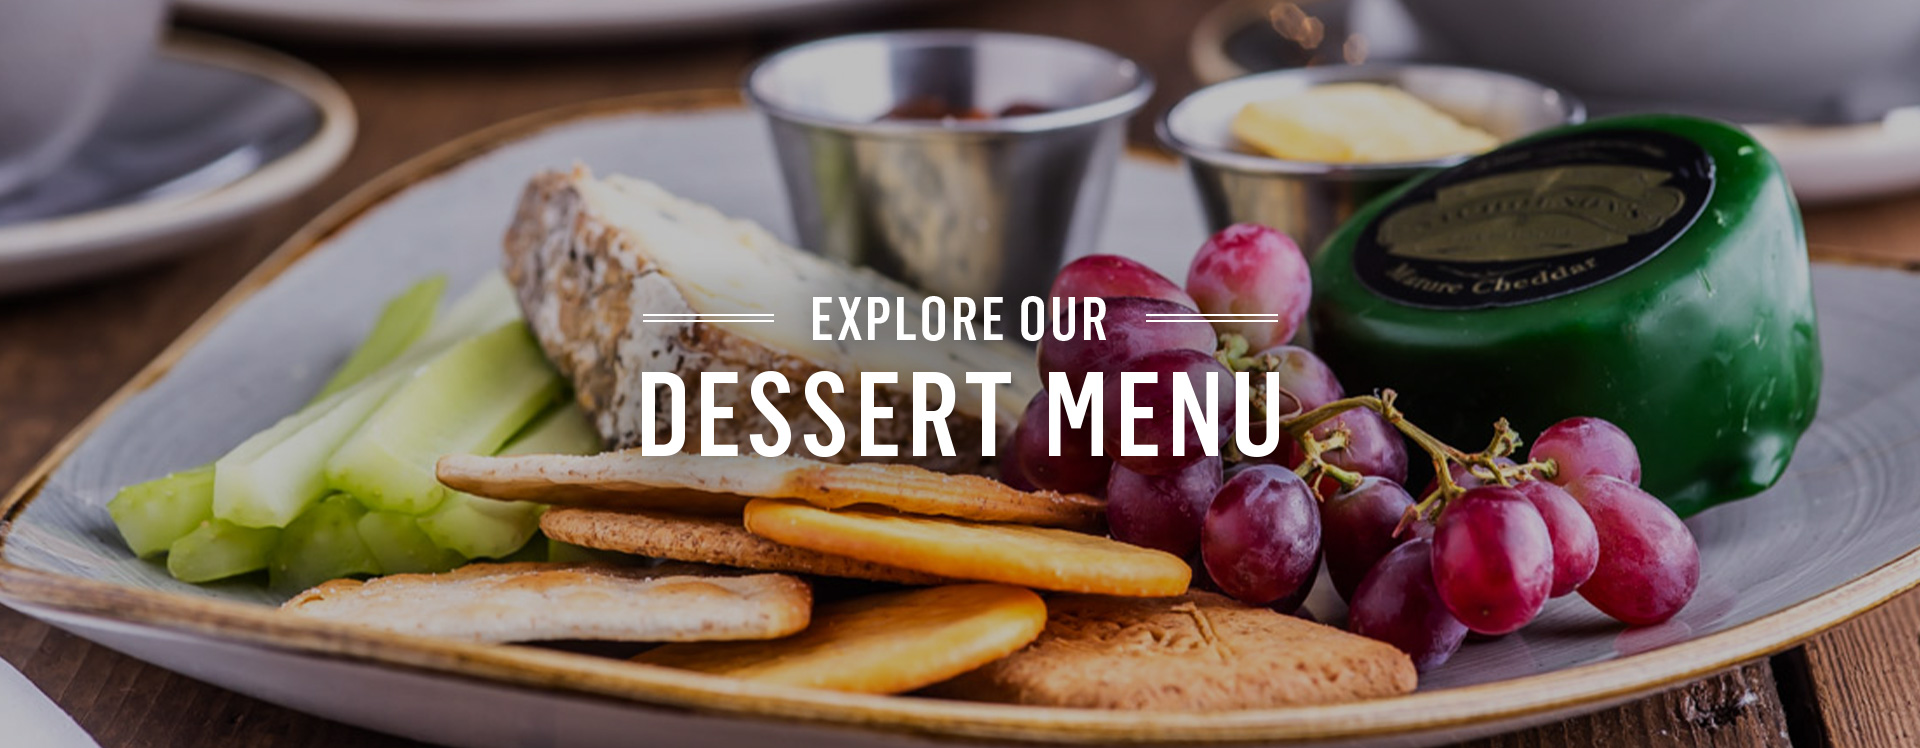 Dessert menu at The Wellington - Book a table